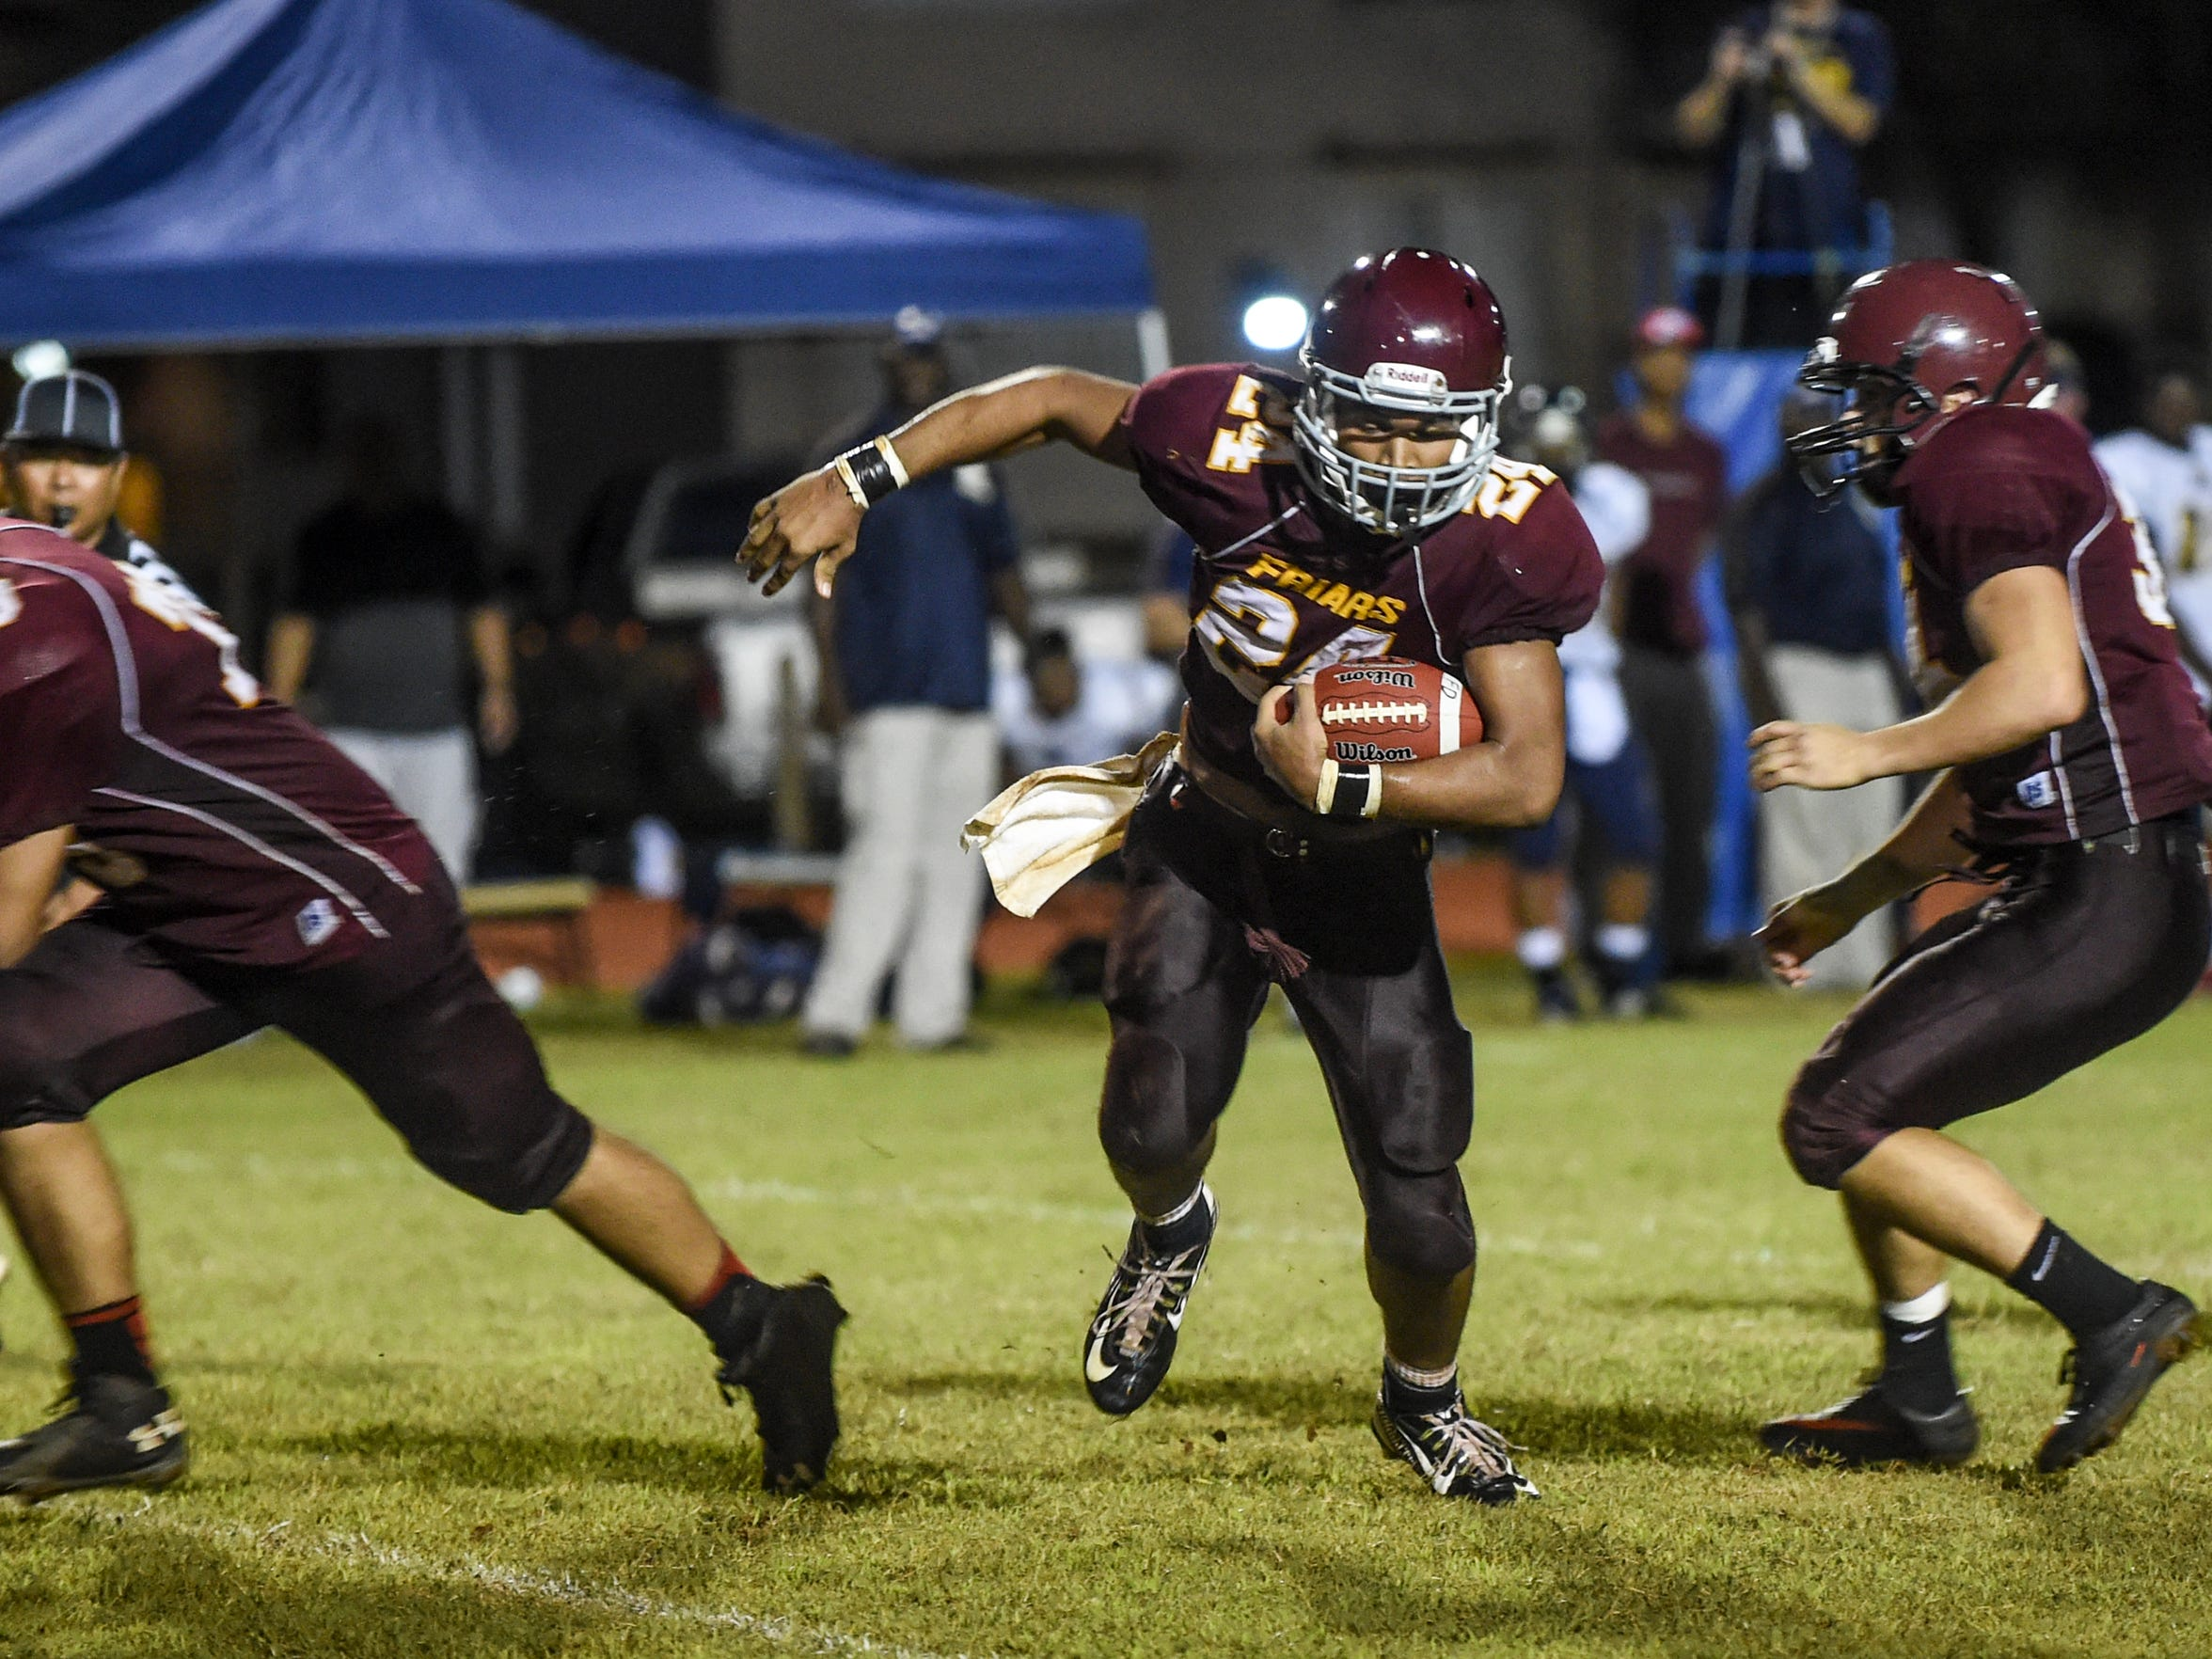 De'Aundre Cruz, running back for the Father Duenas Friars, is shown in this file photo.